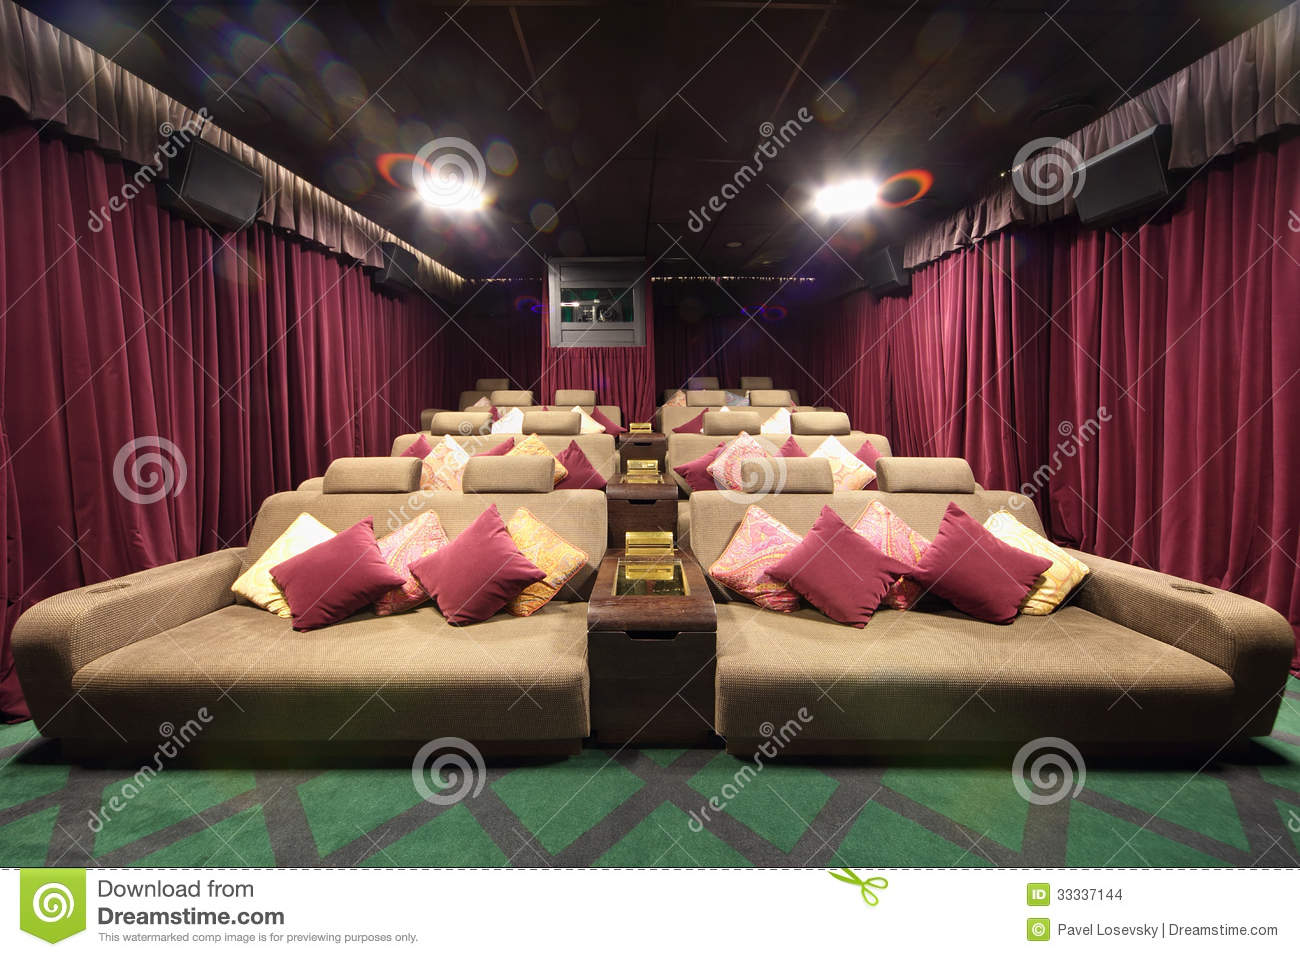 Small Hall Of Cinema With Soft Couches With Pillows Stock